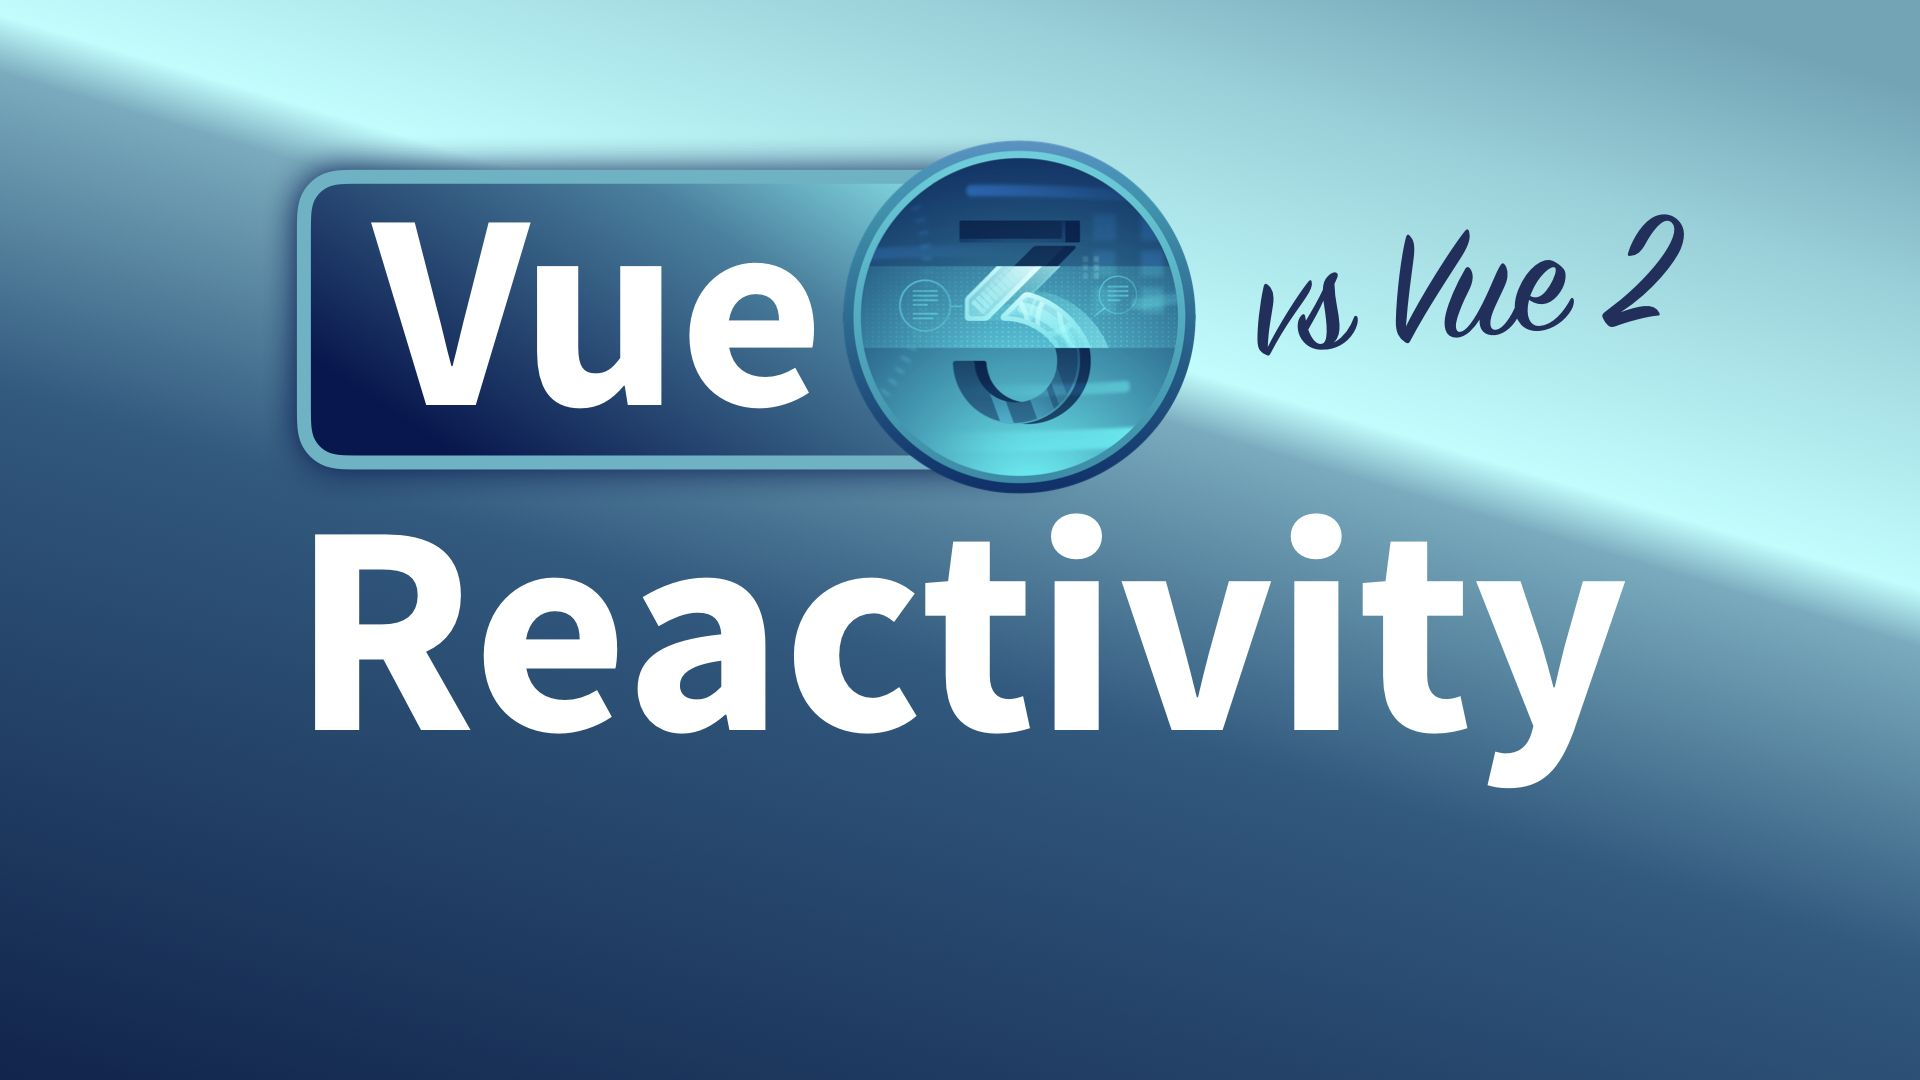 Reactivity: Vue 2 vs Vue 3